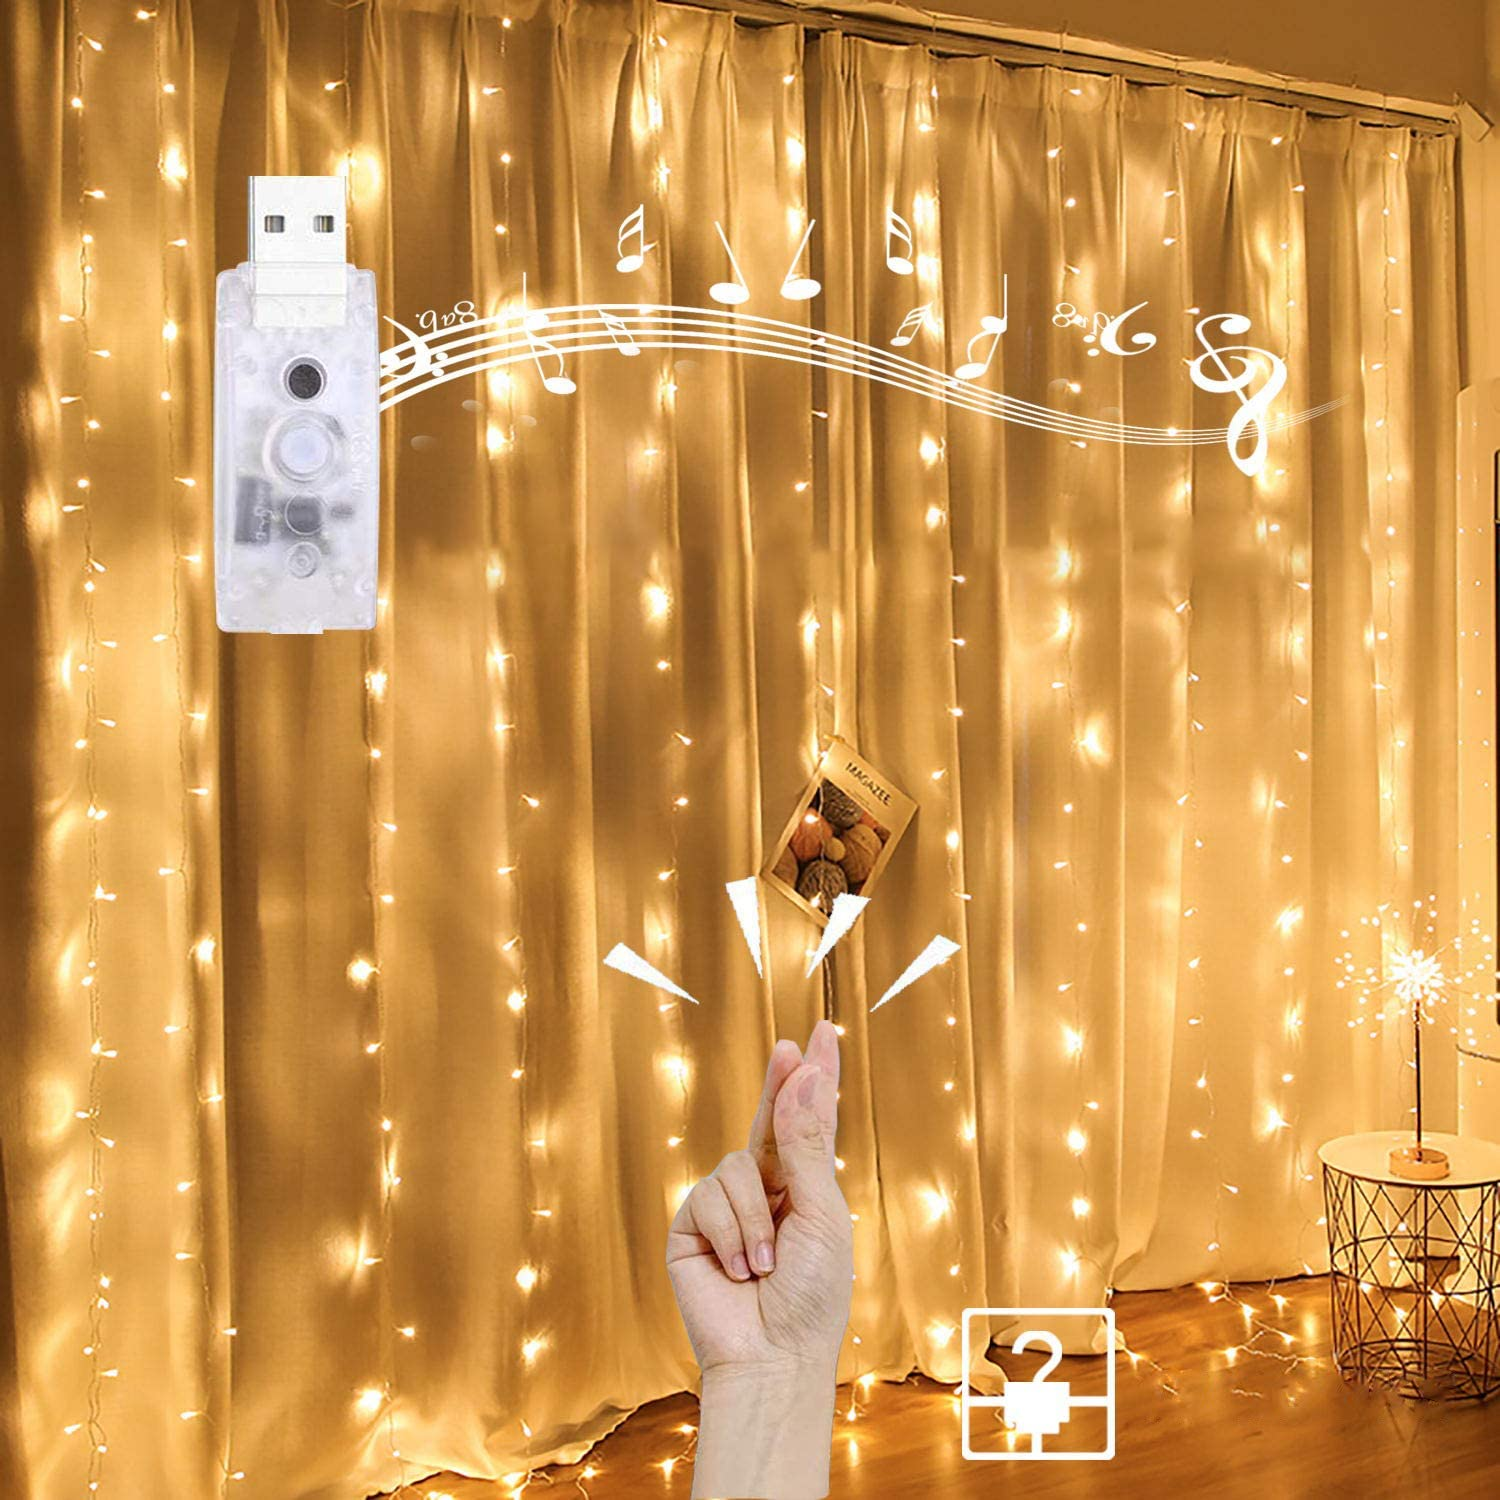 Homemory Hanging Window Curtain Lights 9.8 Ft Dimmable & Connectable, USB Powered with Remote, 4 Music Sync Function Twinkle with Any Voice for Party Wall Decorations (Warm White, 15 Hooks)